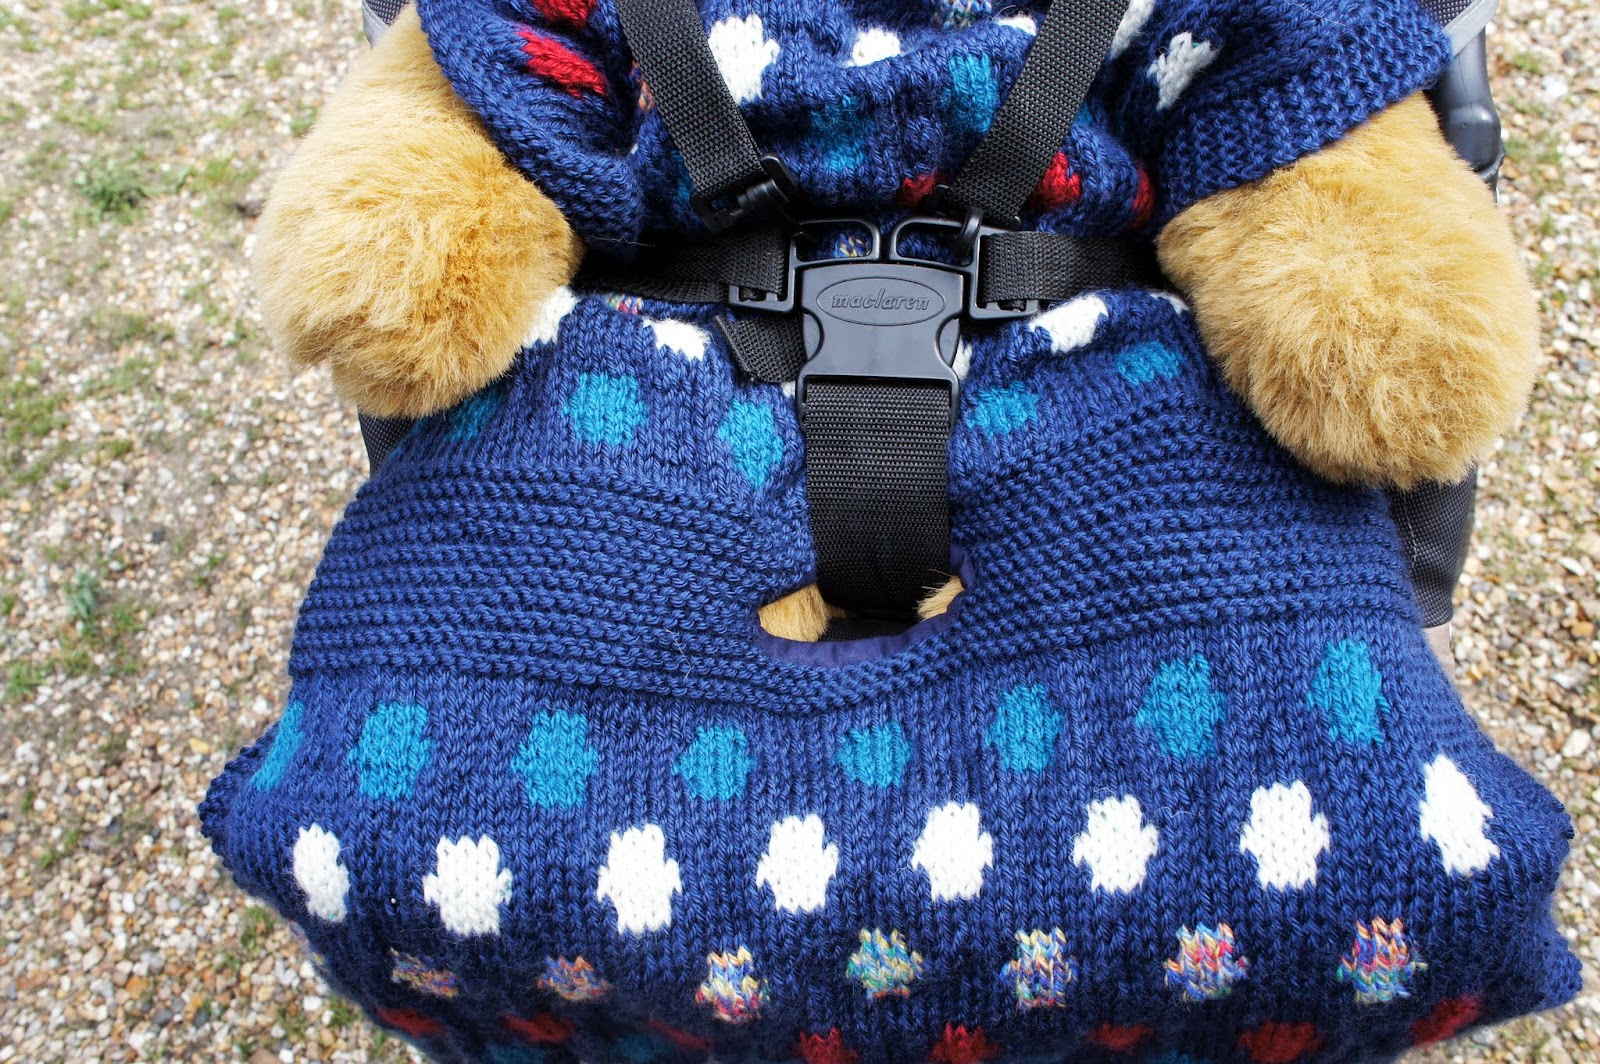 Car Seat Blanket Knitting Pattern : GRANNYS WORLD: Going dotty